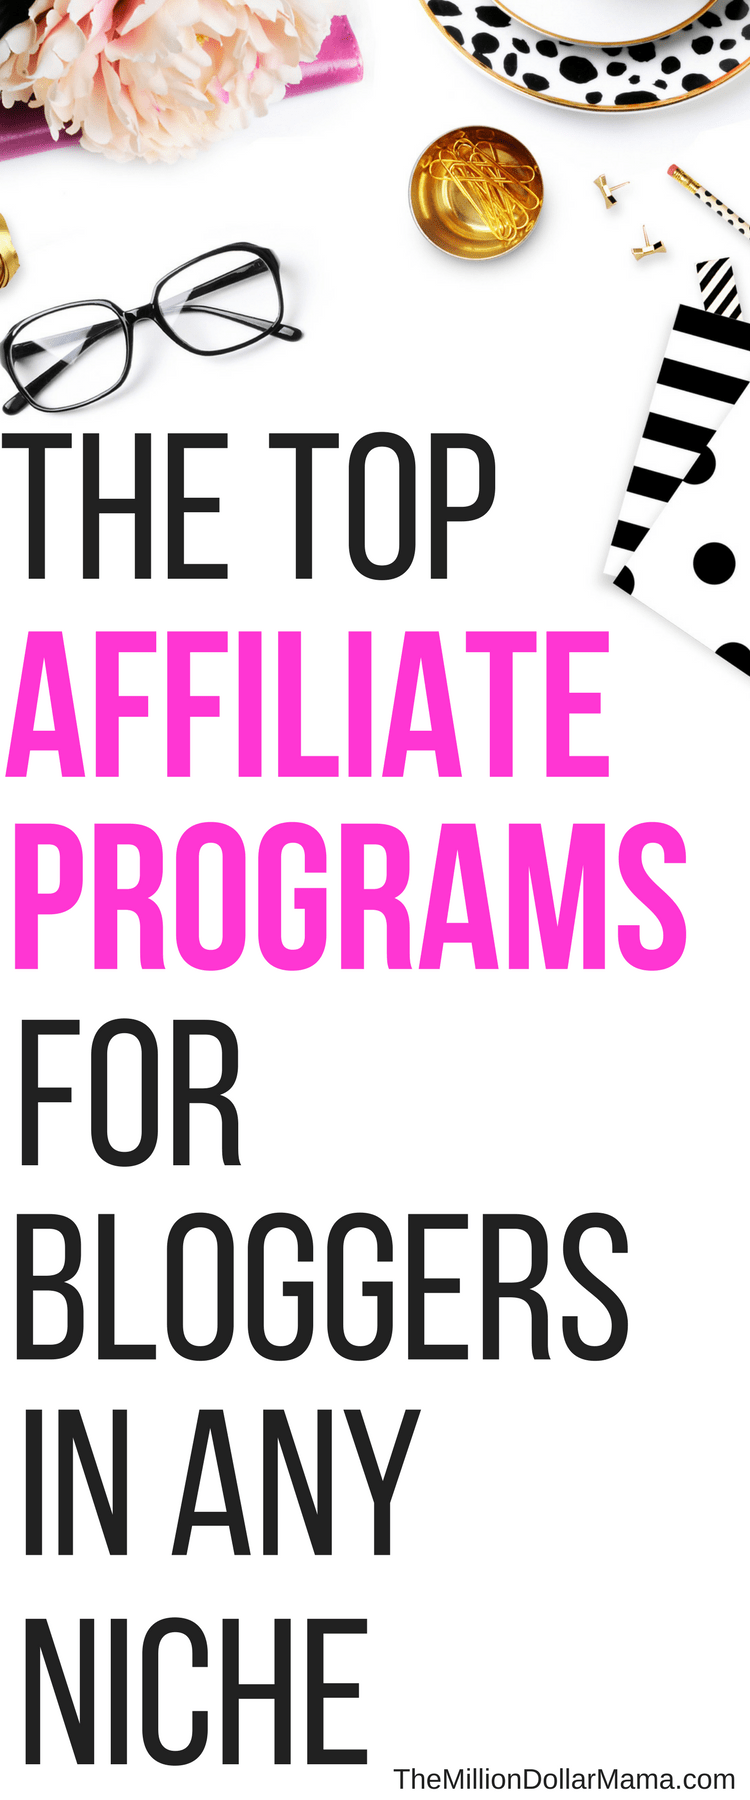 If you're a blogger looking to make money through affiliate programs, then this list of top affiliate programs is for you!